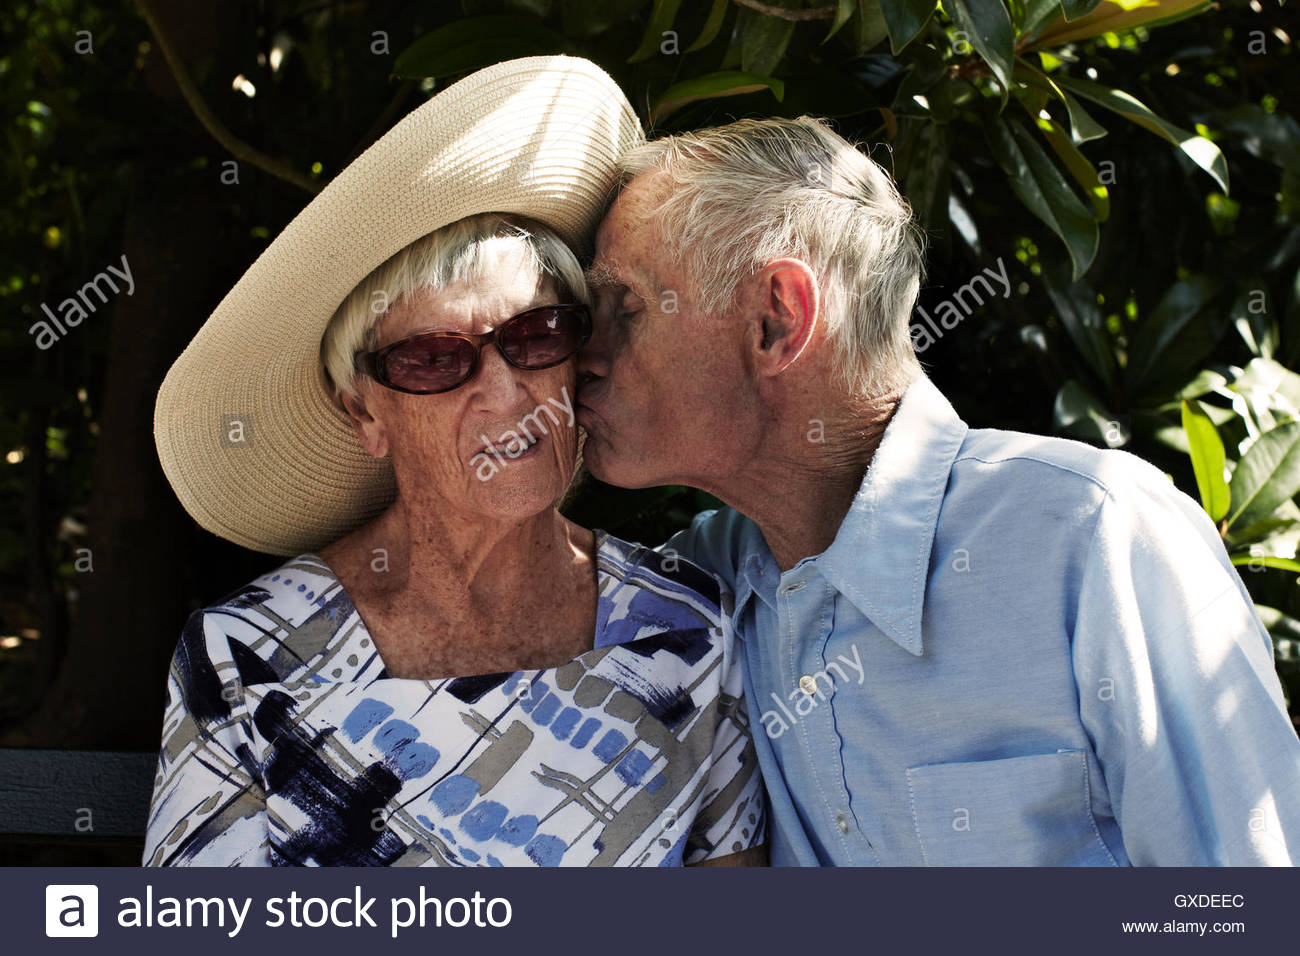 Romantic Couple Kissing On Cheek Stock Photos Amp Romantic